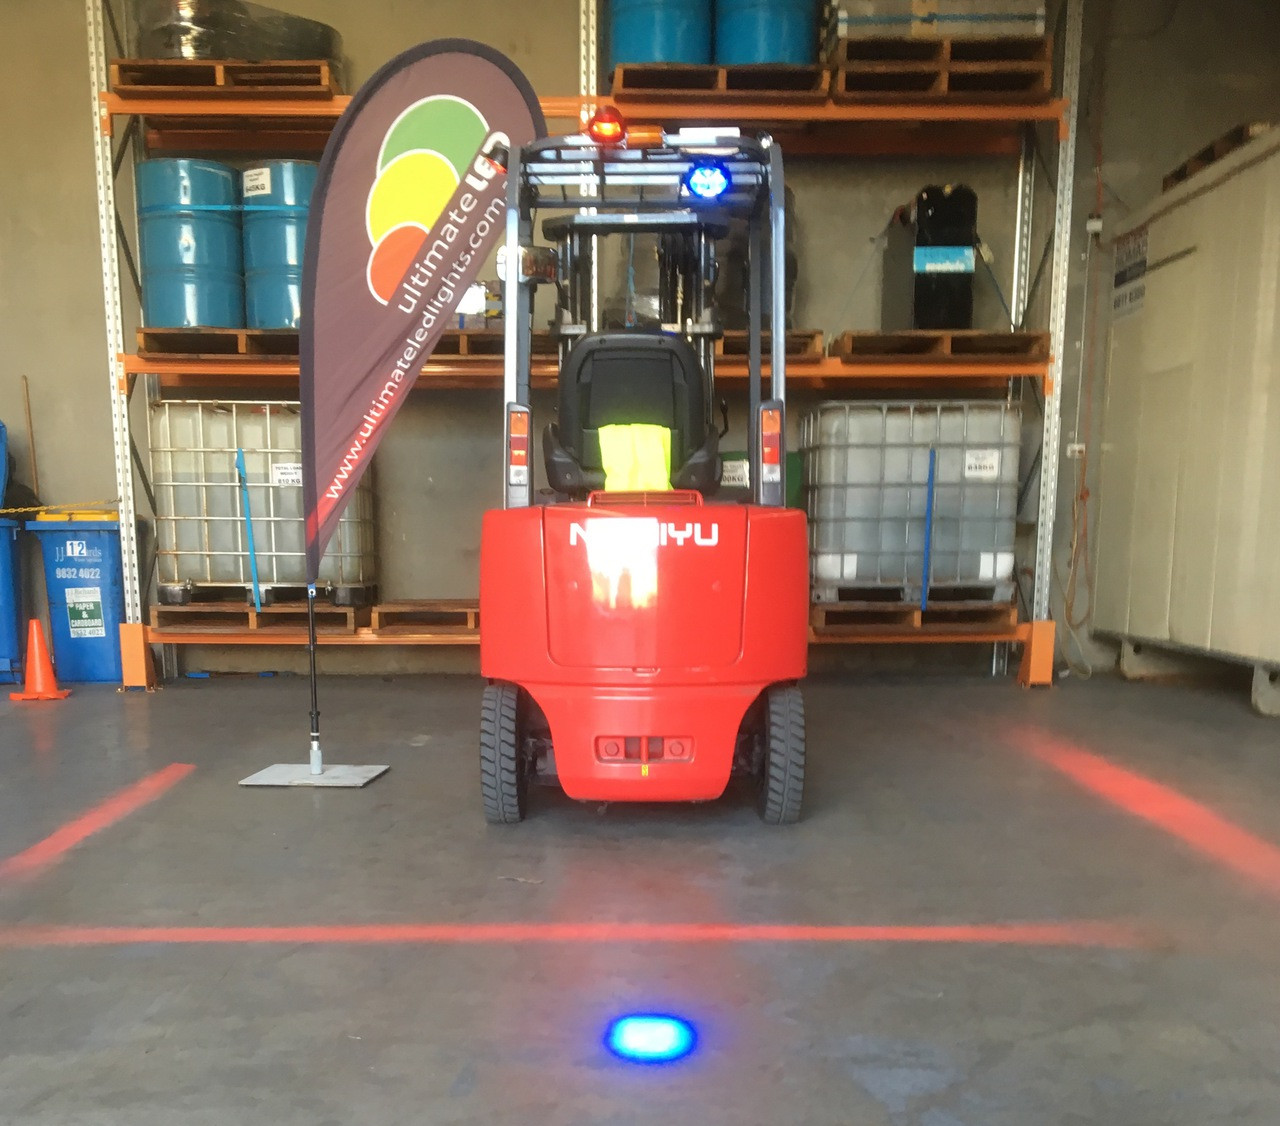 Forklift Workplace Safety Halo System. Create a Safety Halo around your Forklift. Red Zone Danger Area, Warning Safety Warehouse light. Create a NO Go Zone. Ultimate LED.